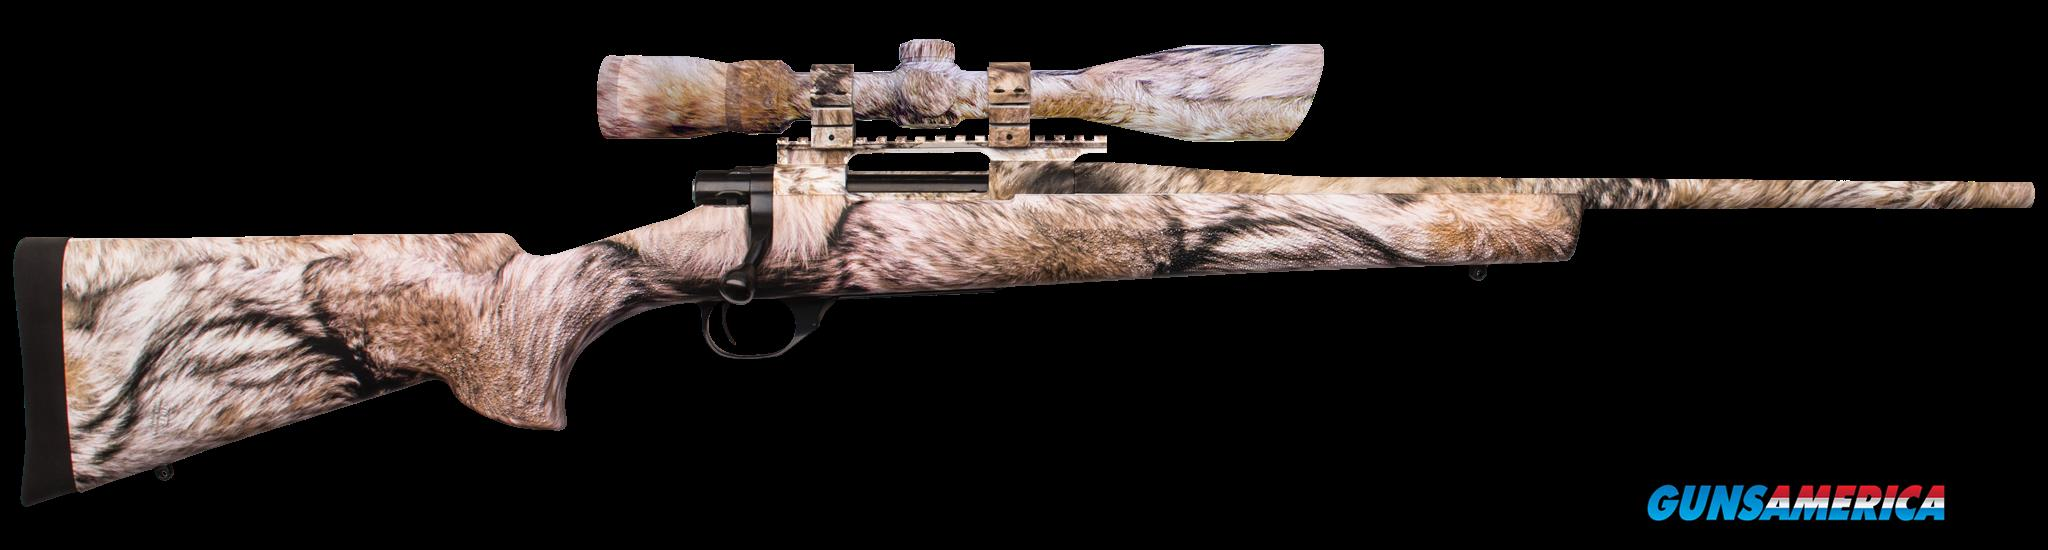 "Howa HGR90227YOTE Hogue Gameking Scope Package Bolt 223 Remington 20"" HB 5+1 Hogue Overmolded  Guns > Rifles > H Misc Rifles"